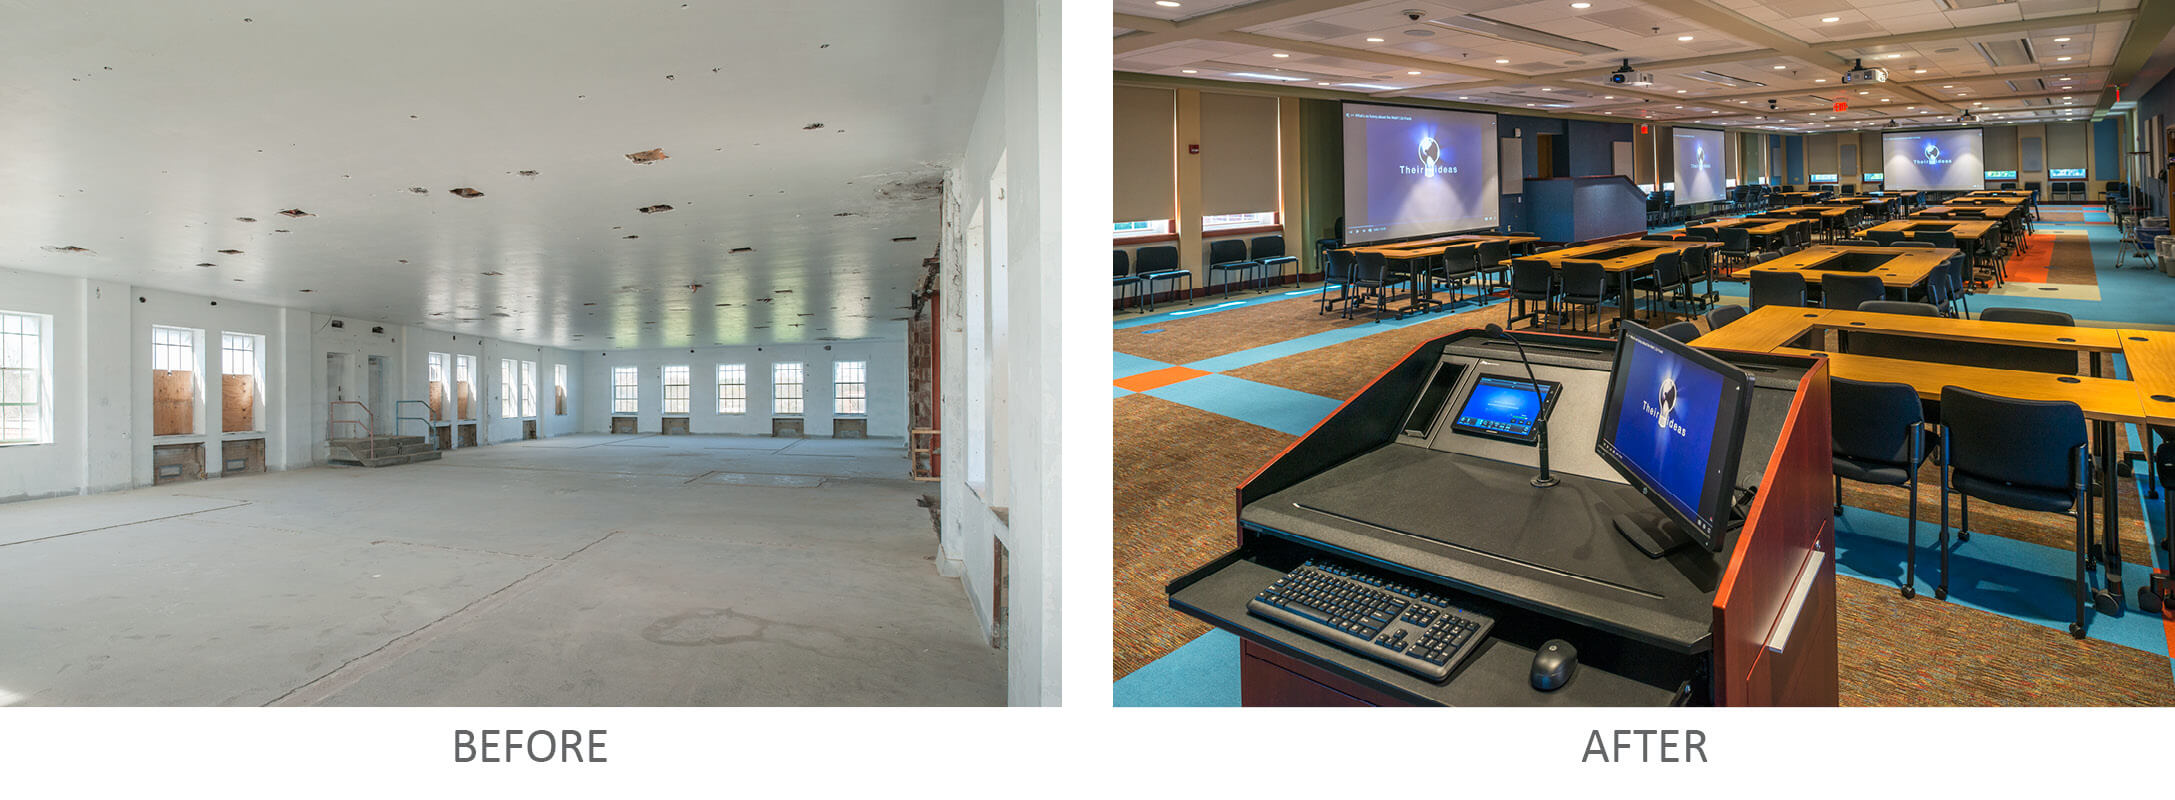 Conference Room Before, Conference Room and Podium After